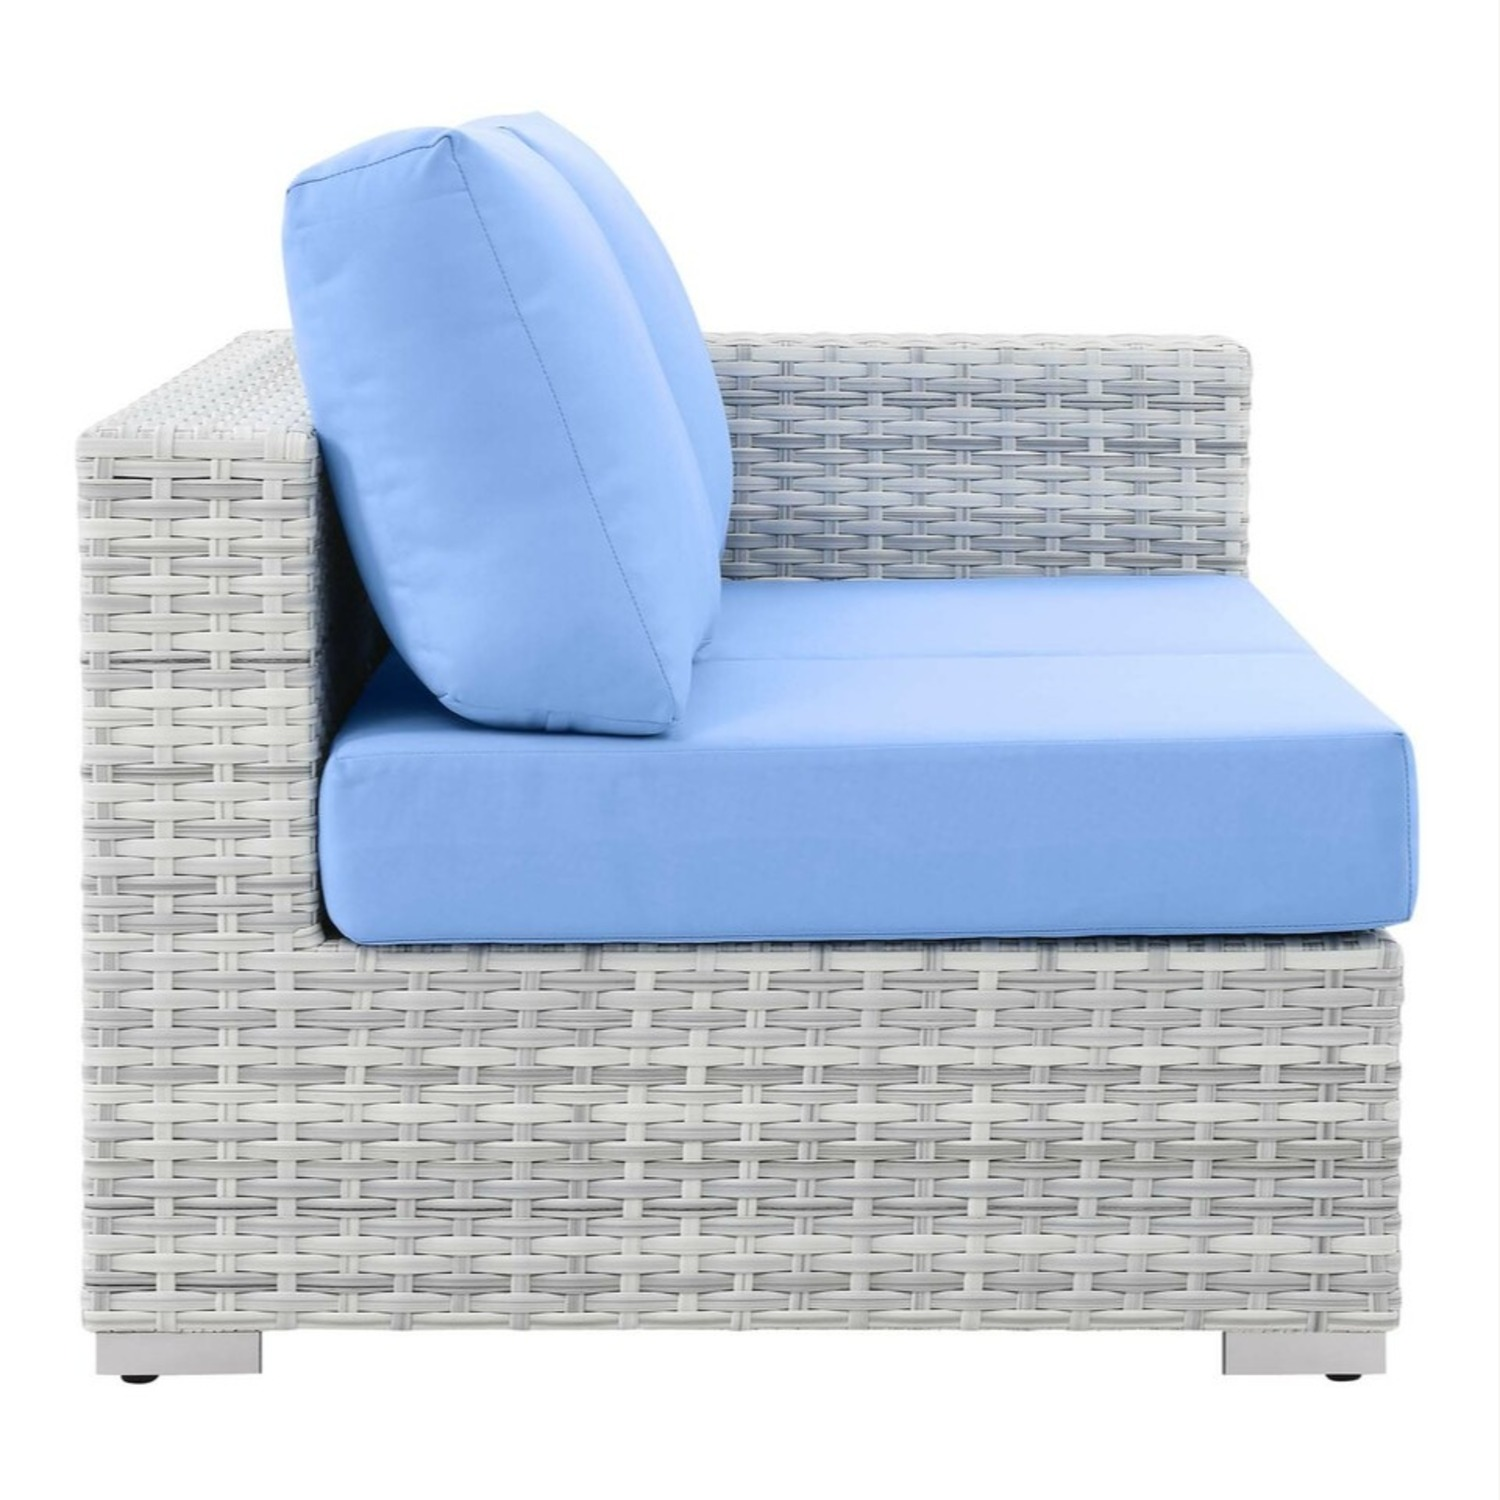 6-Piece Outdoor Patio Sectional In Light Blue Seat - image-8